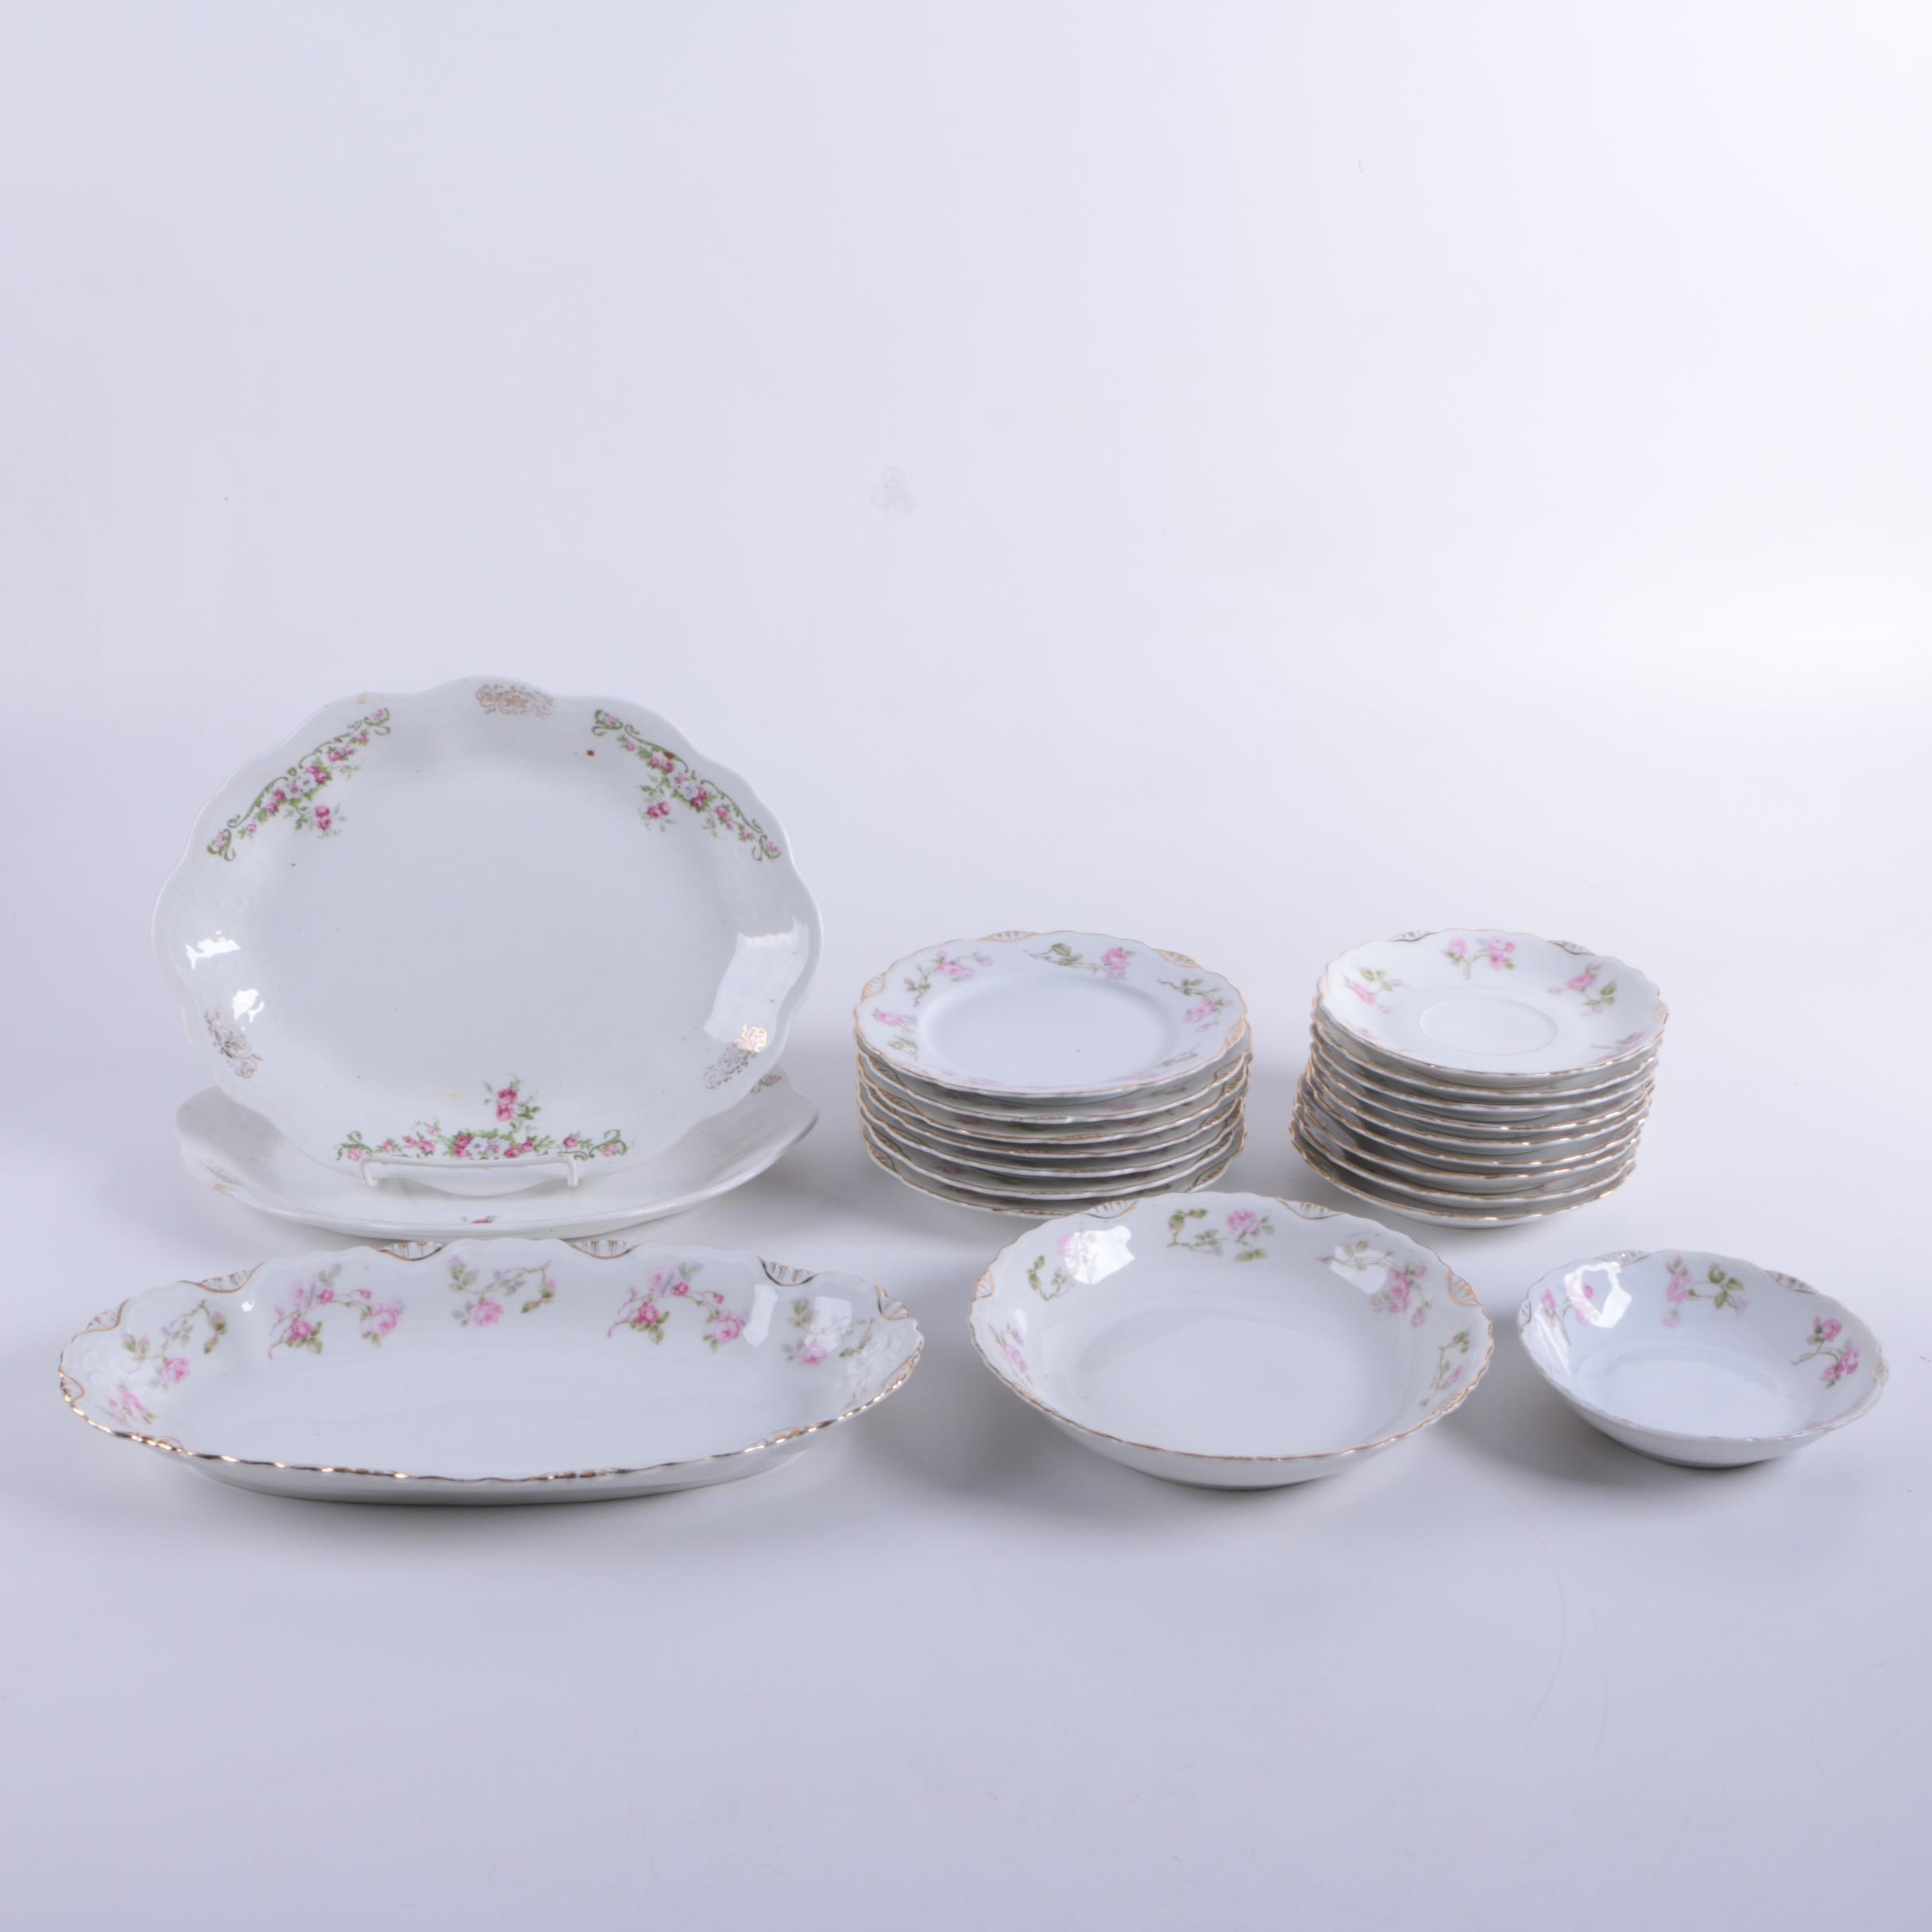 C.T. Altwasser Porcelain and Colonial Ceramic Tableware